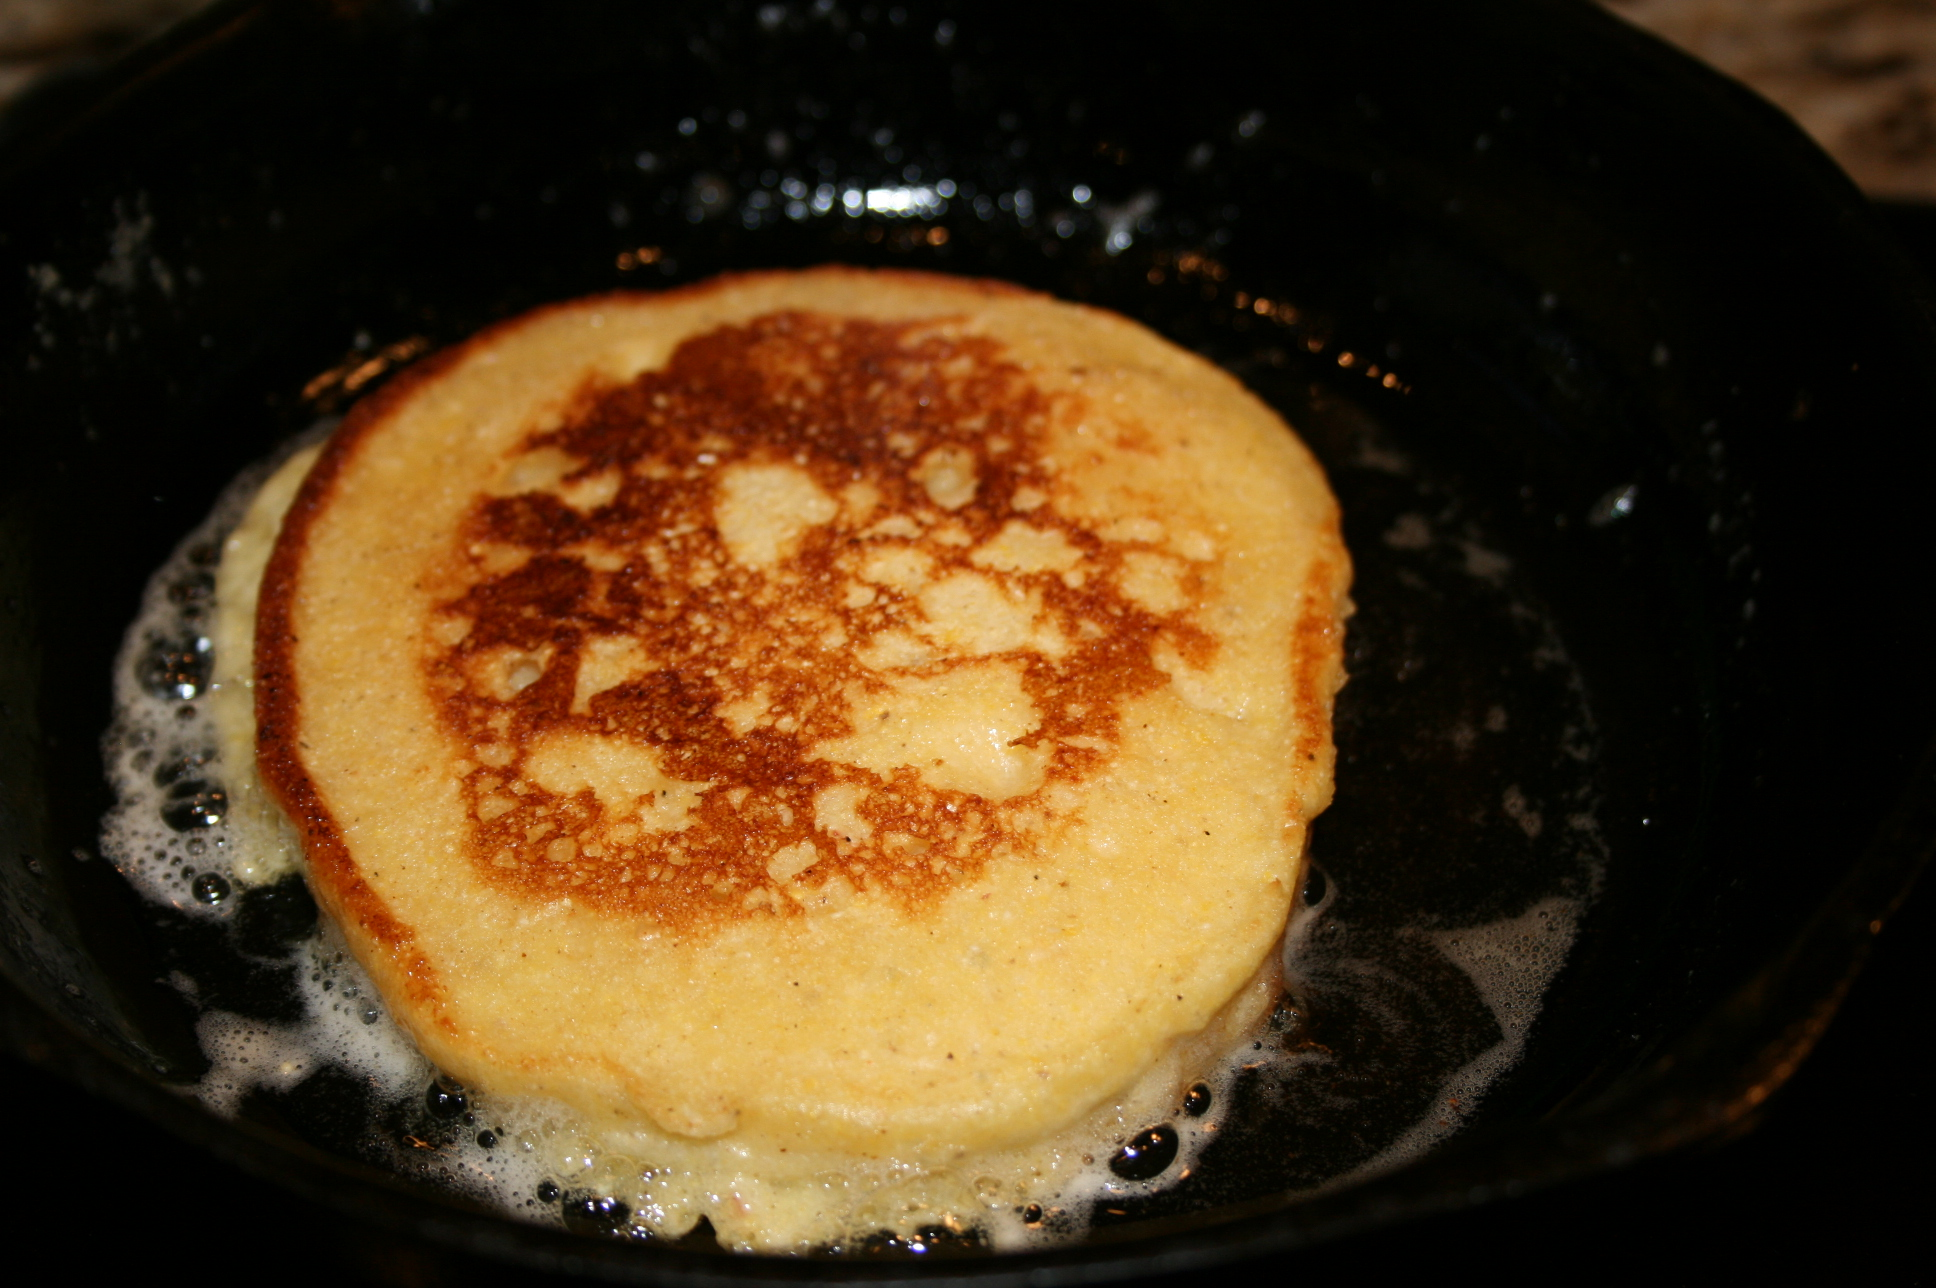 Southern Cornbread Recipe Baked Or Pan Fried Version